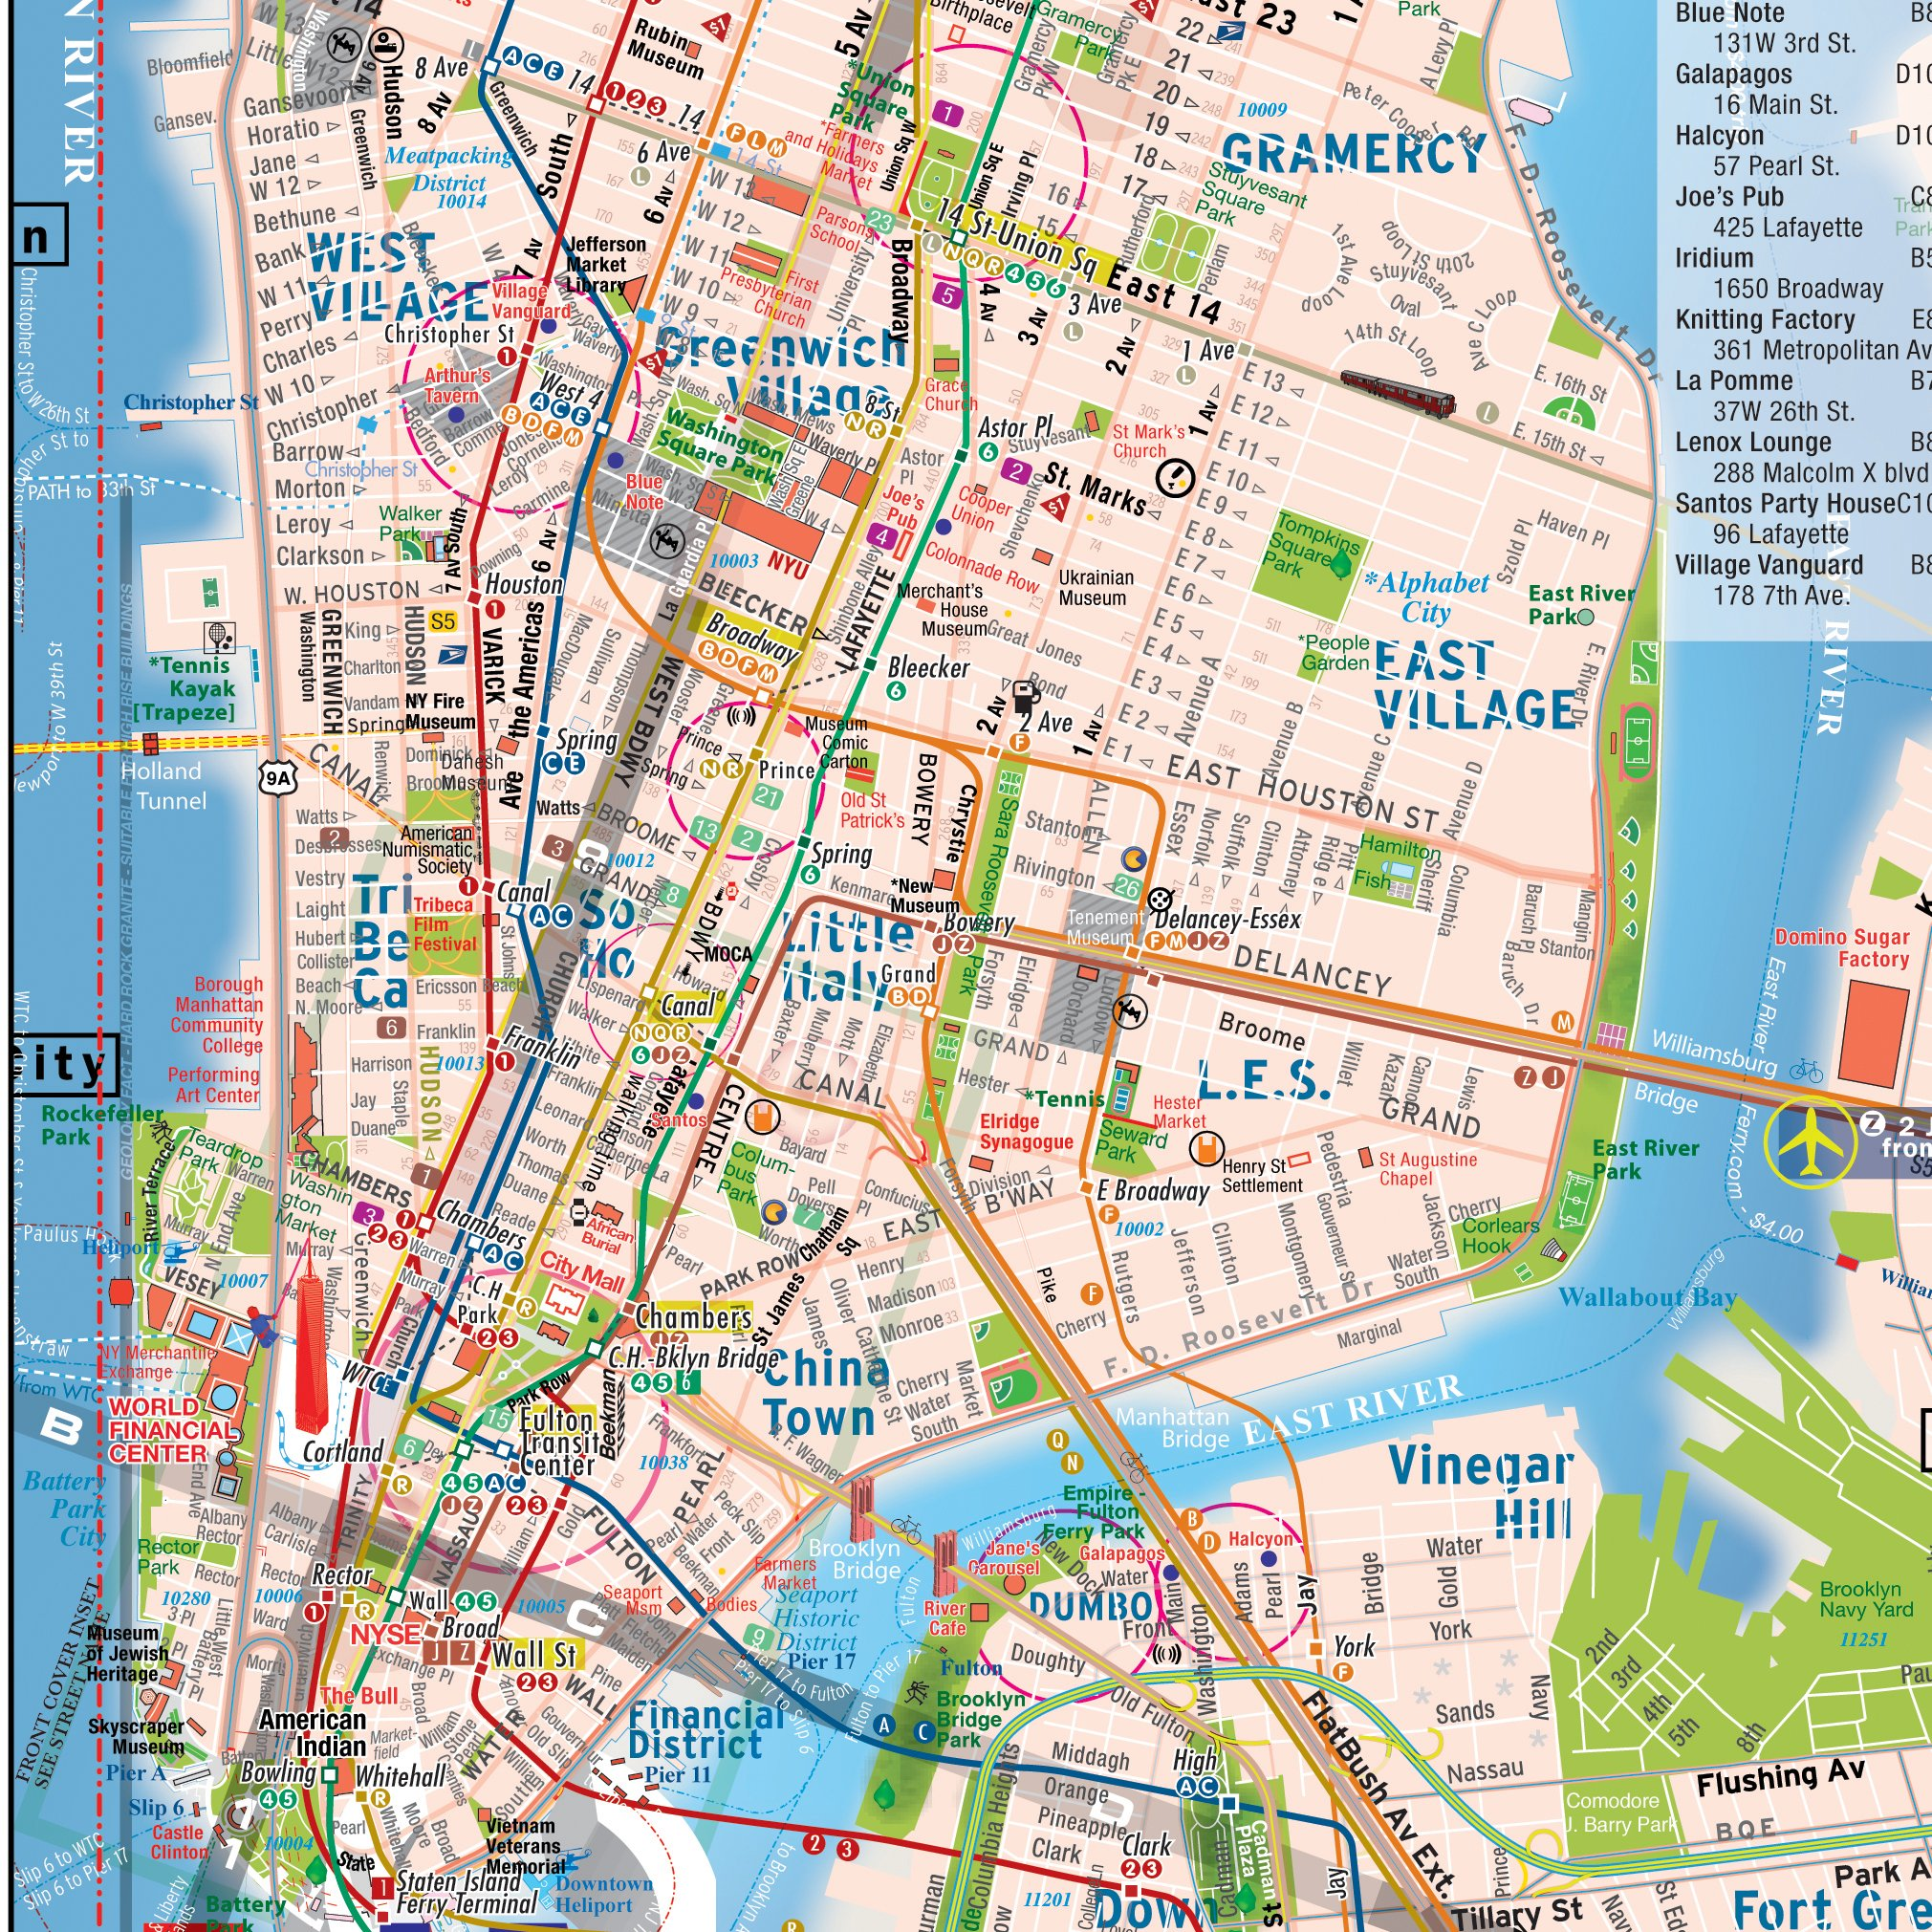 Subway Map New York Manhatten.Terramaps Nyc Manhattan Street And Subway Map Waterproof Pocket